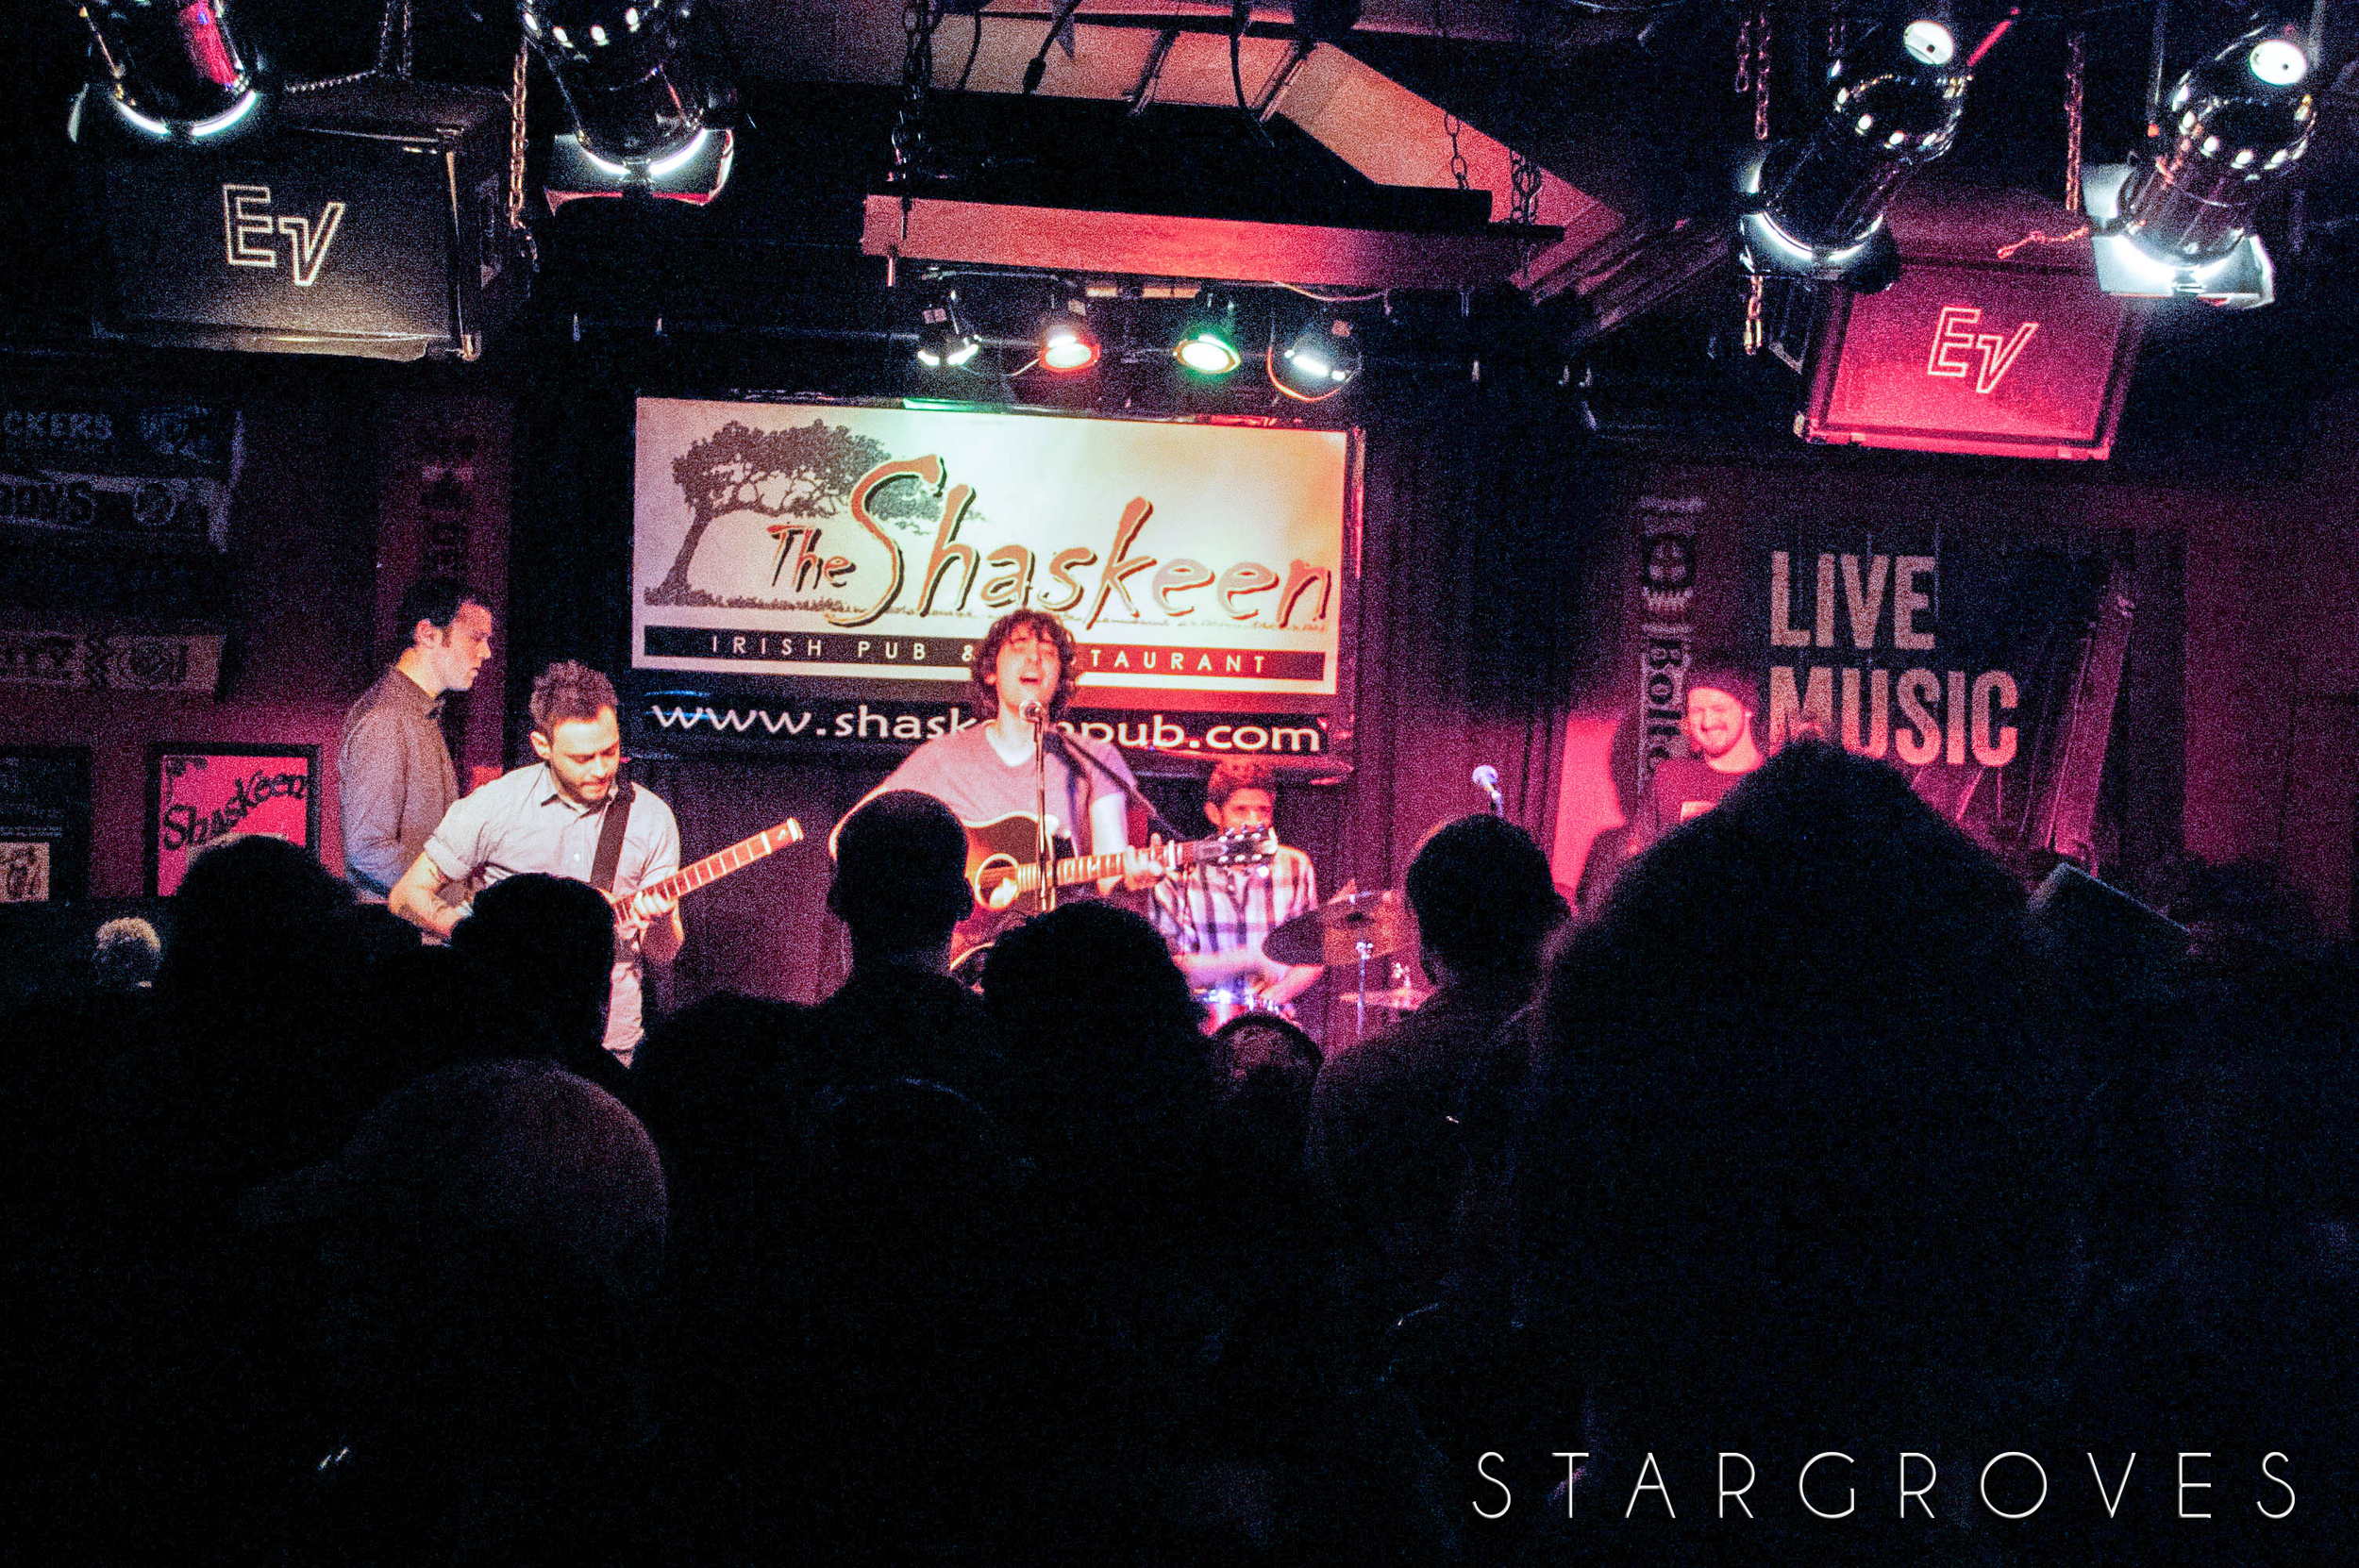 The Shaskeen - Manchester, NH